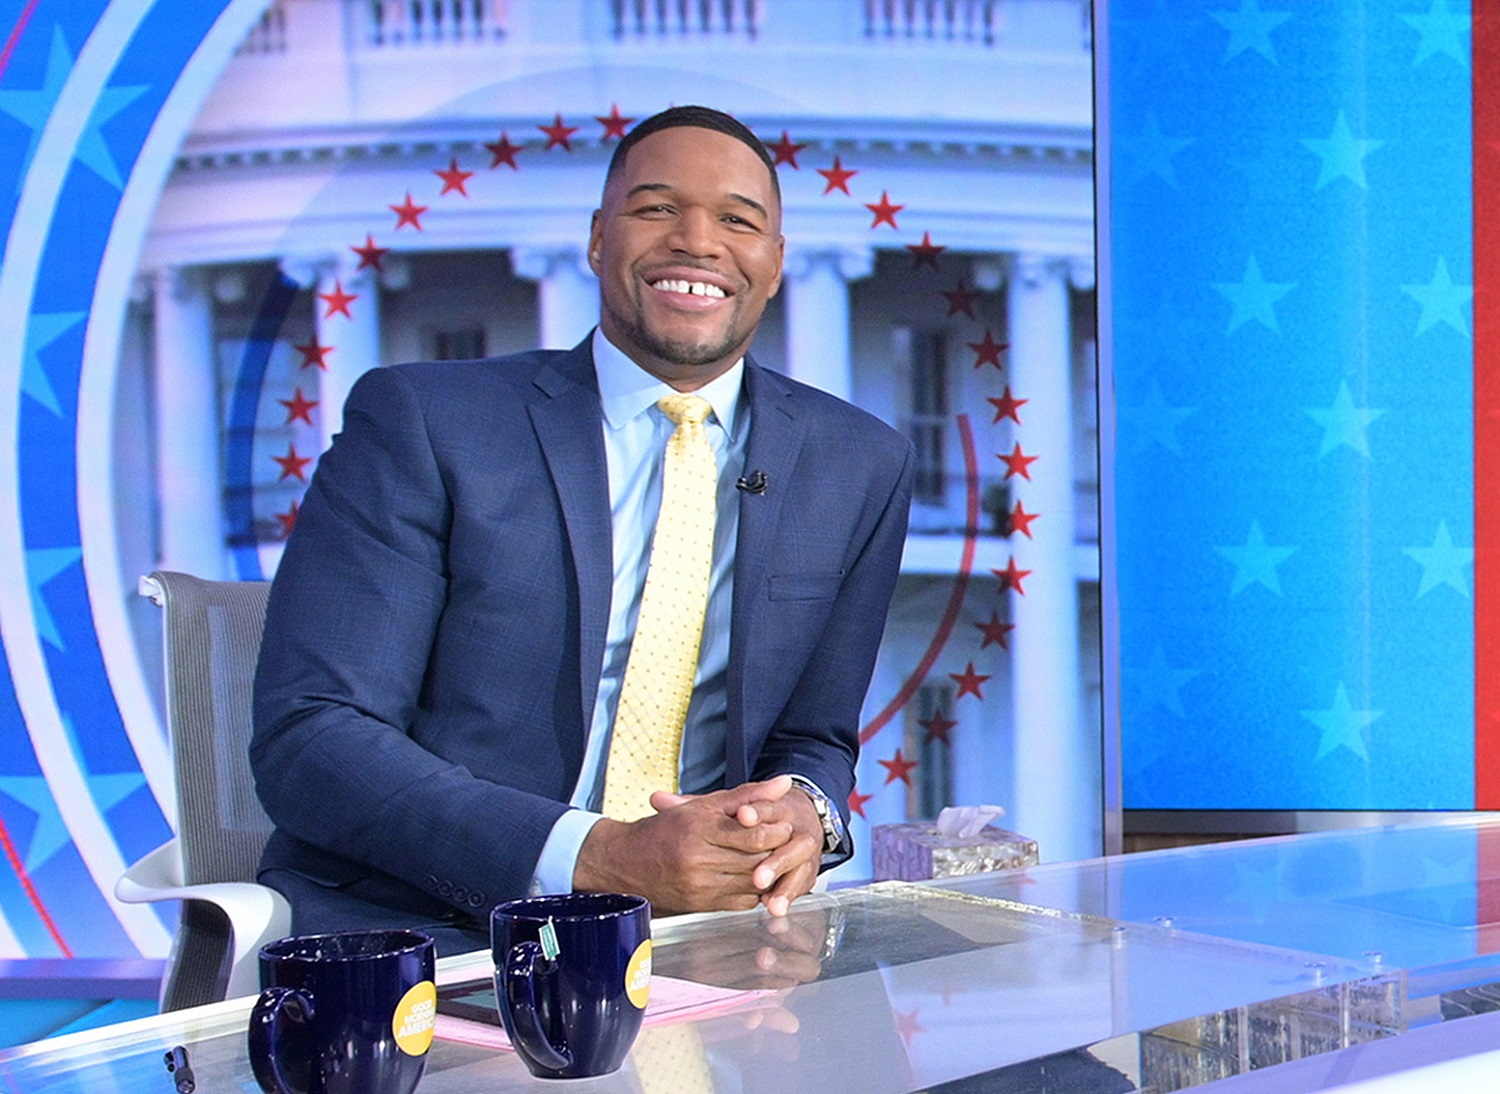 Michael Strahan joined Fox Sports shortly after retiring from the New York Giants and then broke into daytime television. | Paula Lobo/ABC via Getty Images